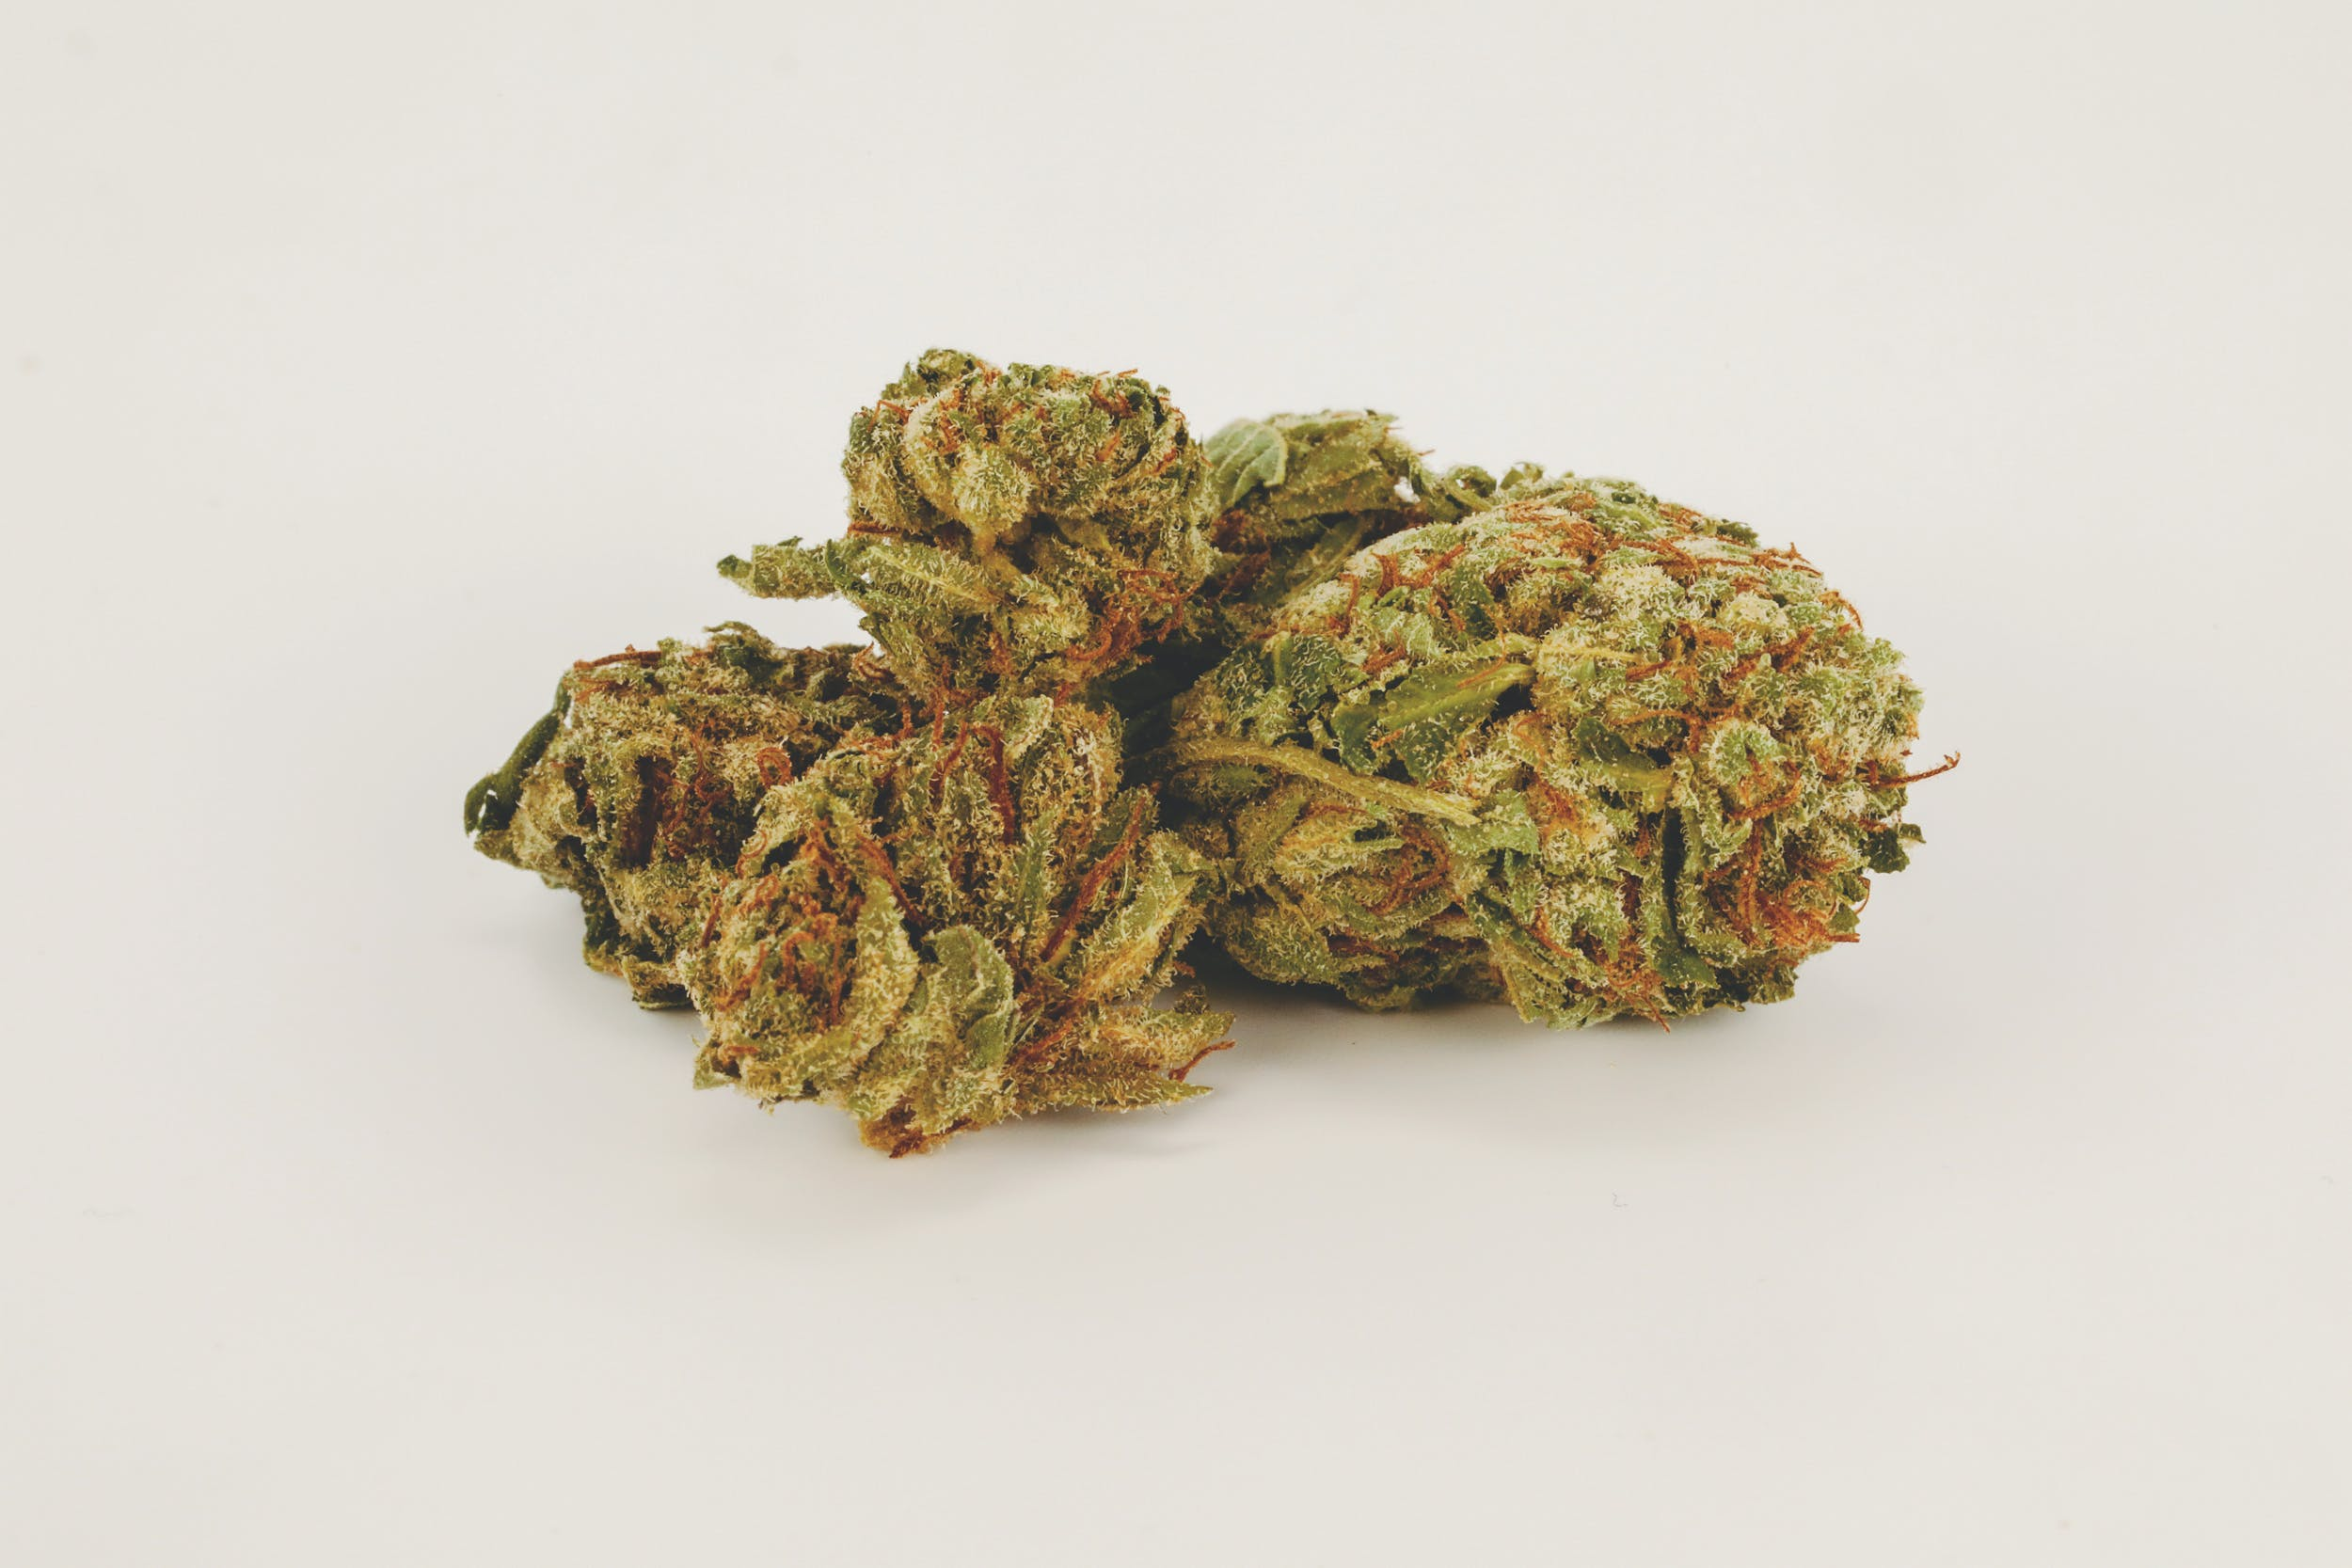 Best Kush Strains 4 These are the Best Kush Strains on the Planet